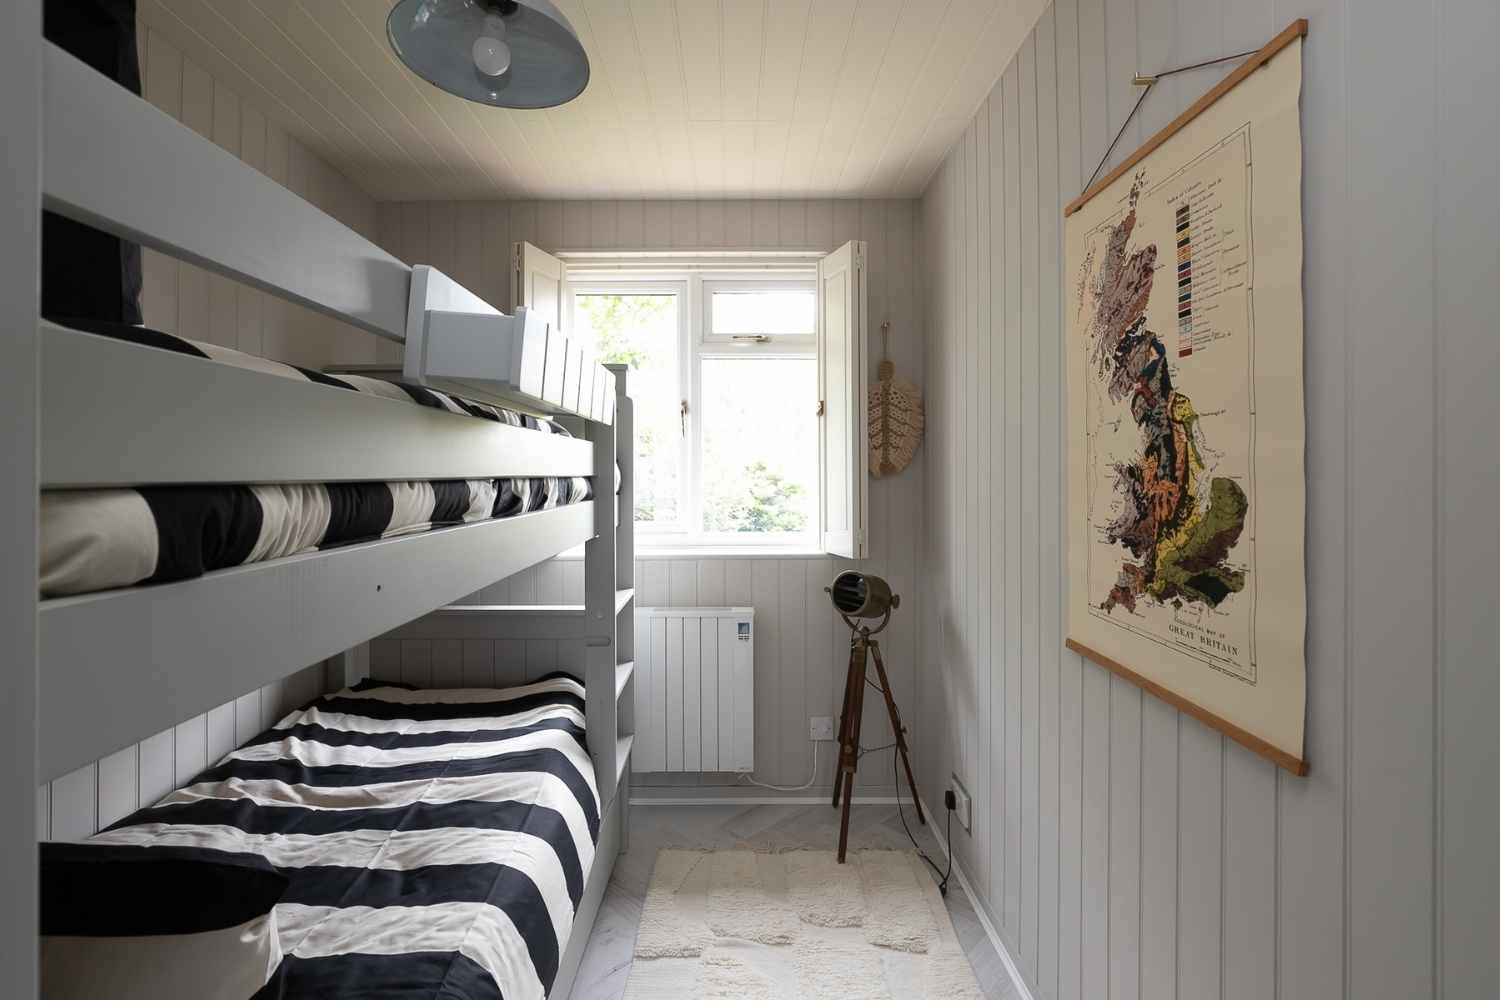 Bunk room with pull out trundle